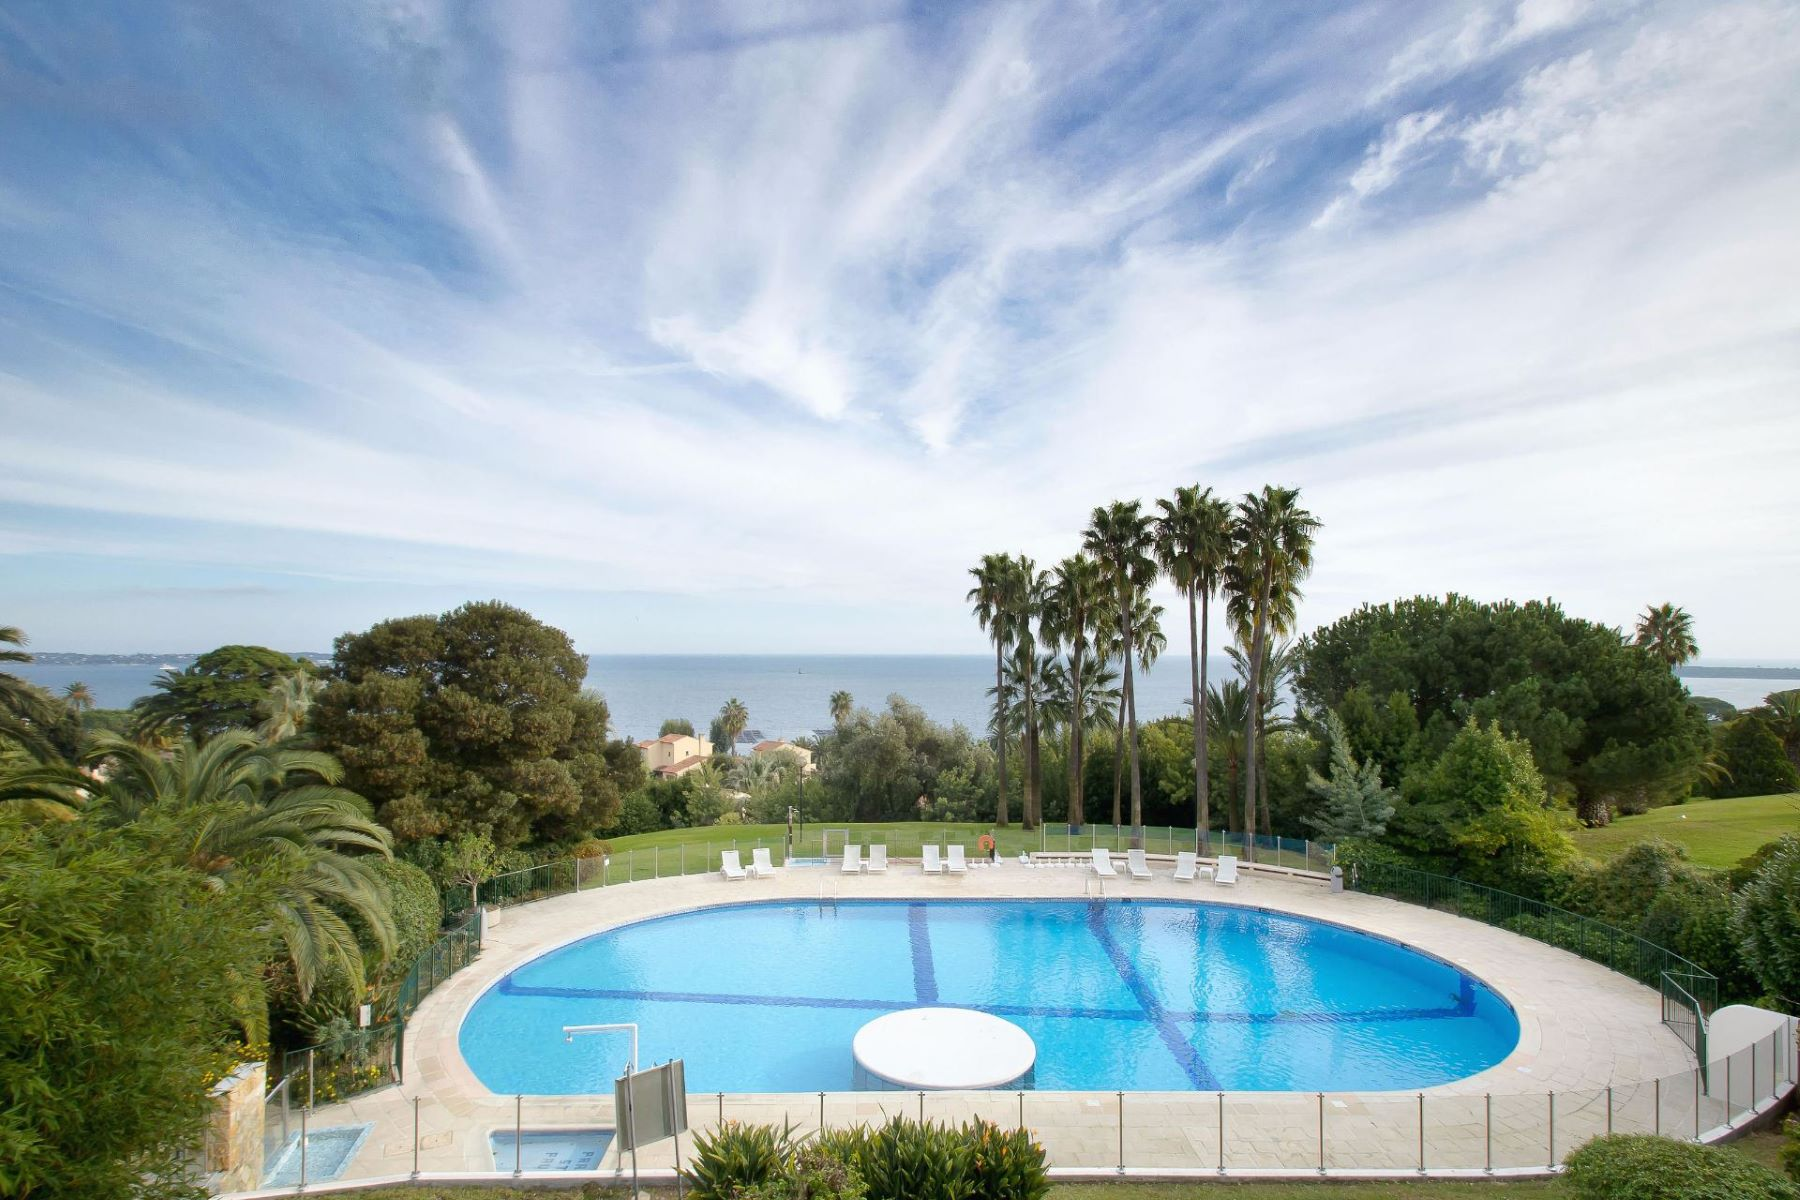 Vivienda unifamiliar por un Venta en Quiet area - Cannes Californie - house for sale in a gated domain - sea views Cannes, Provincia - Alpes - Costa Azul, 06400 Francia